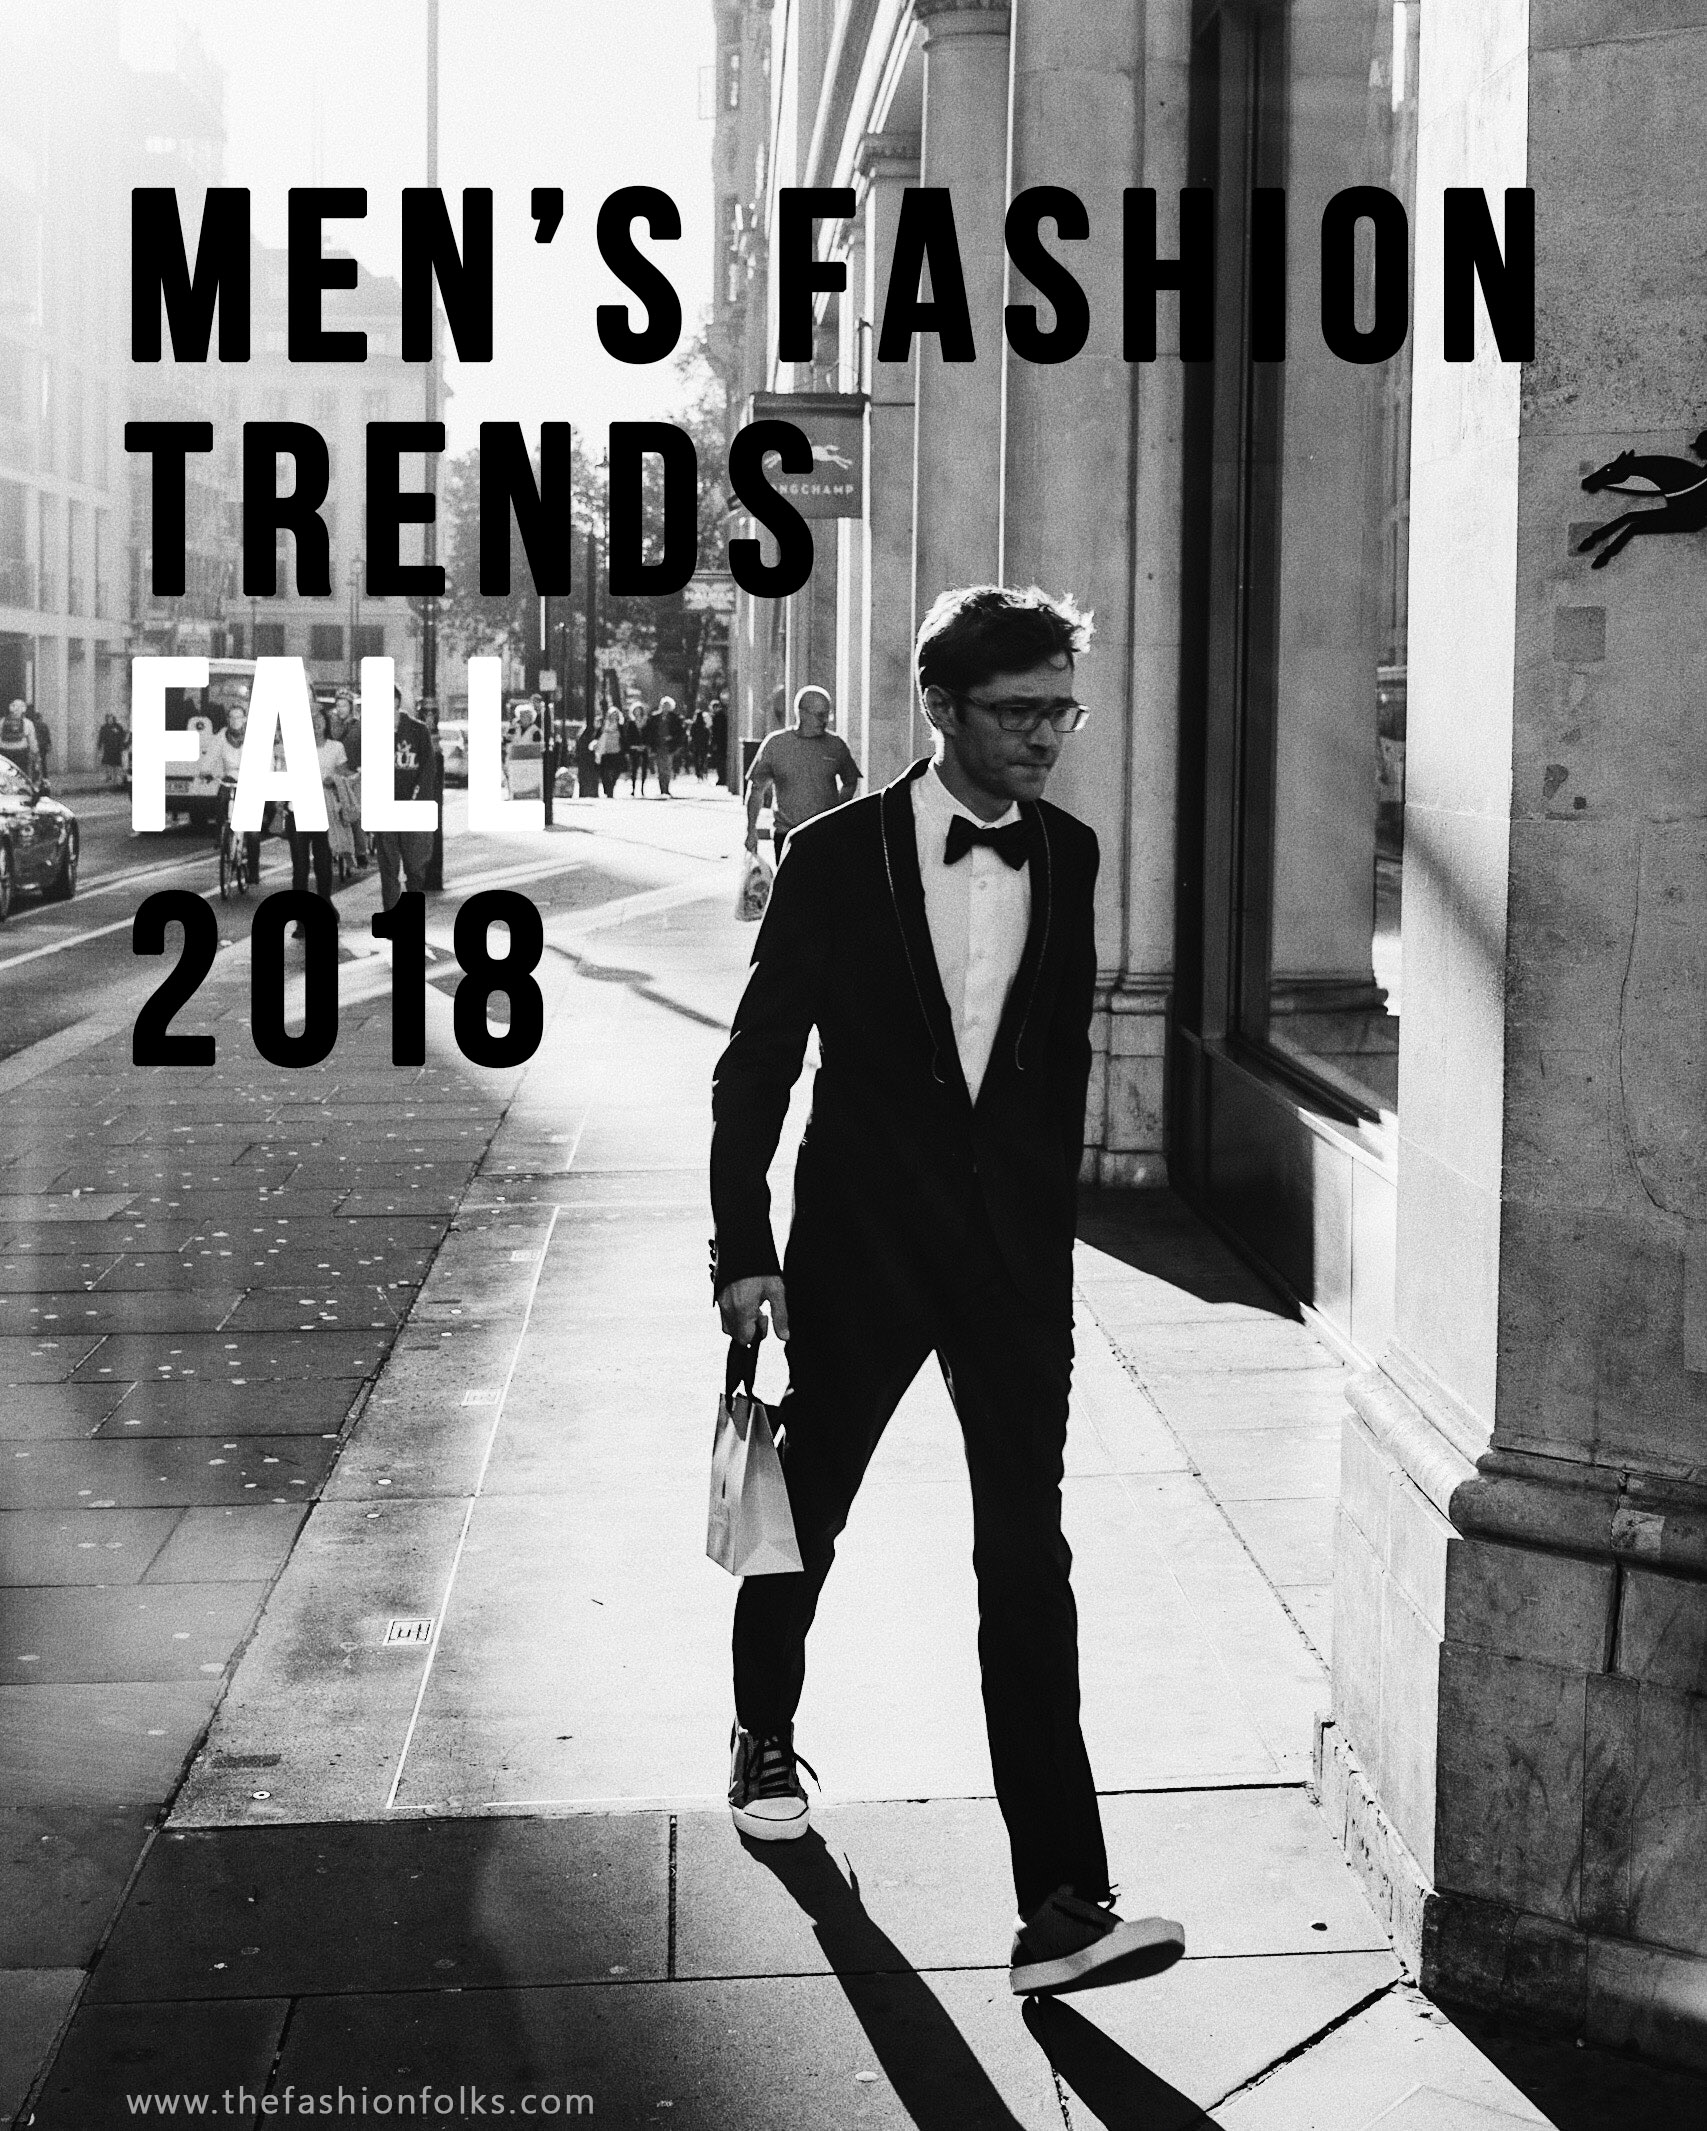 Men's Fashion Trends Fall 2018